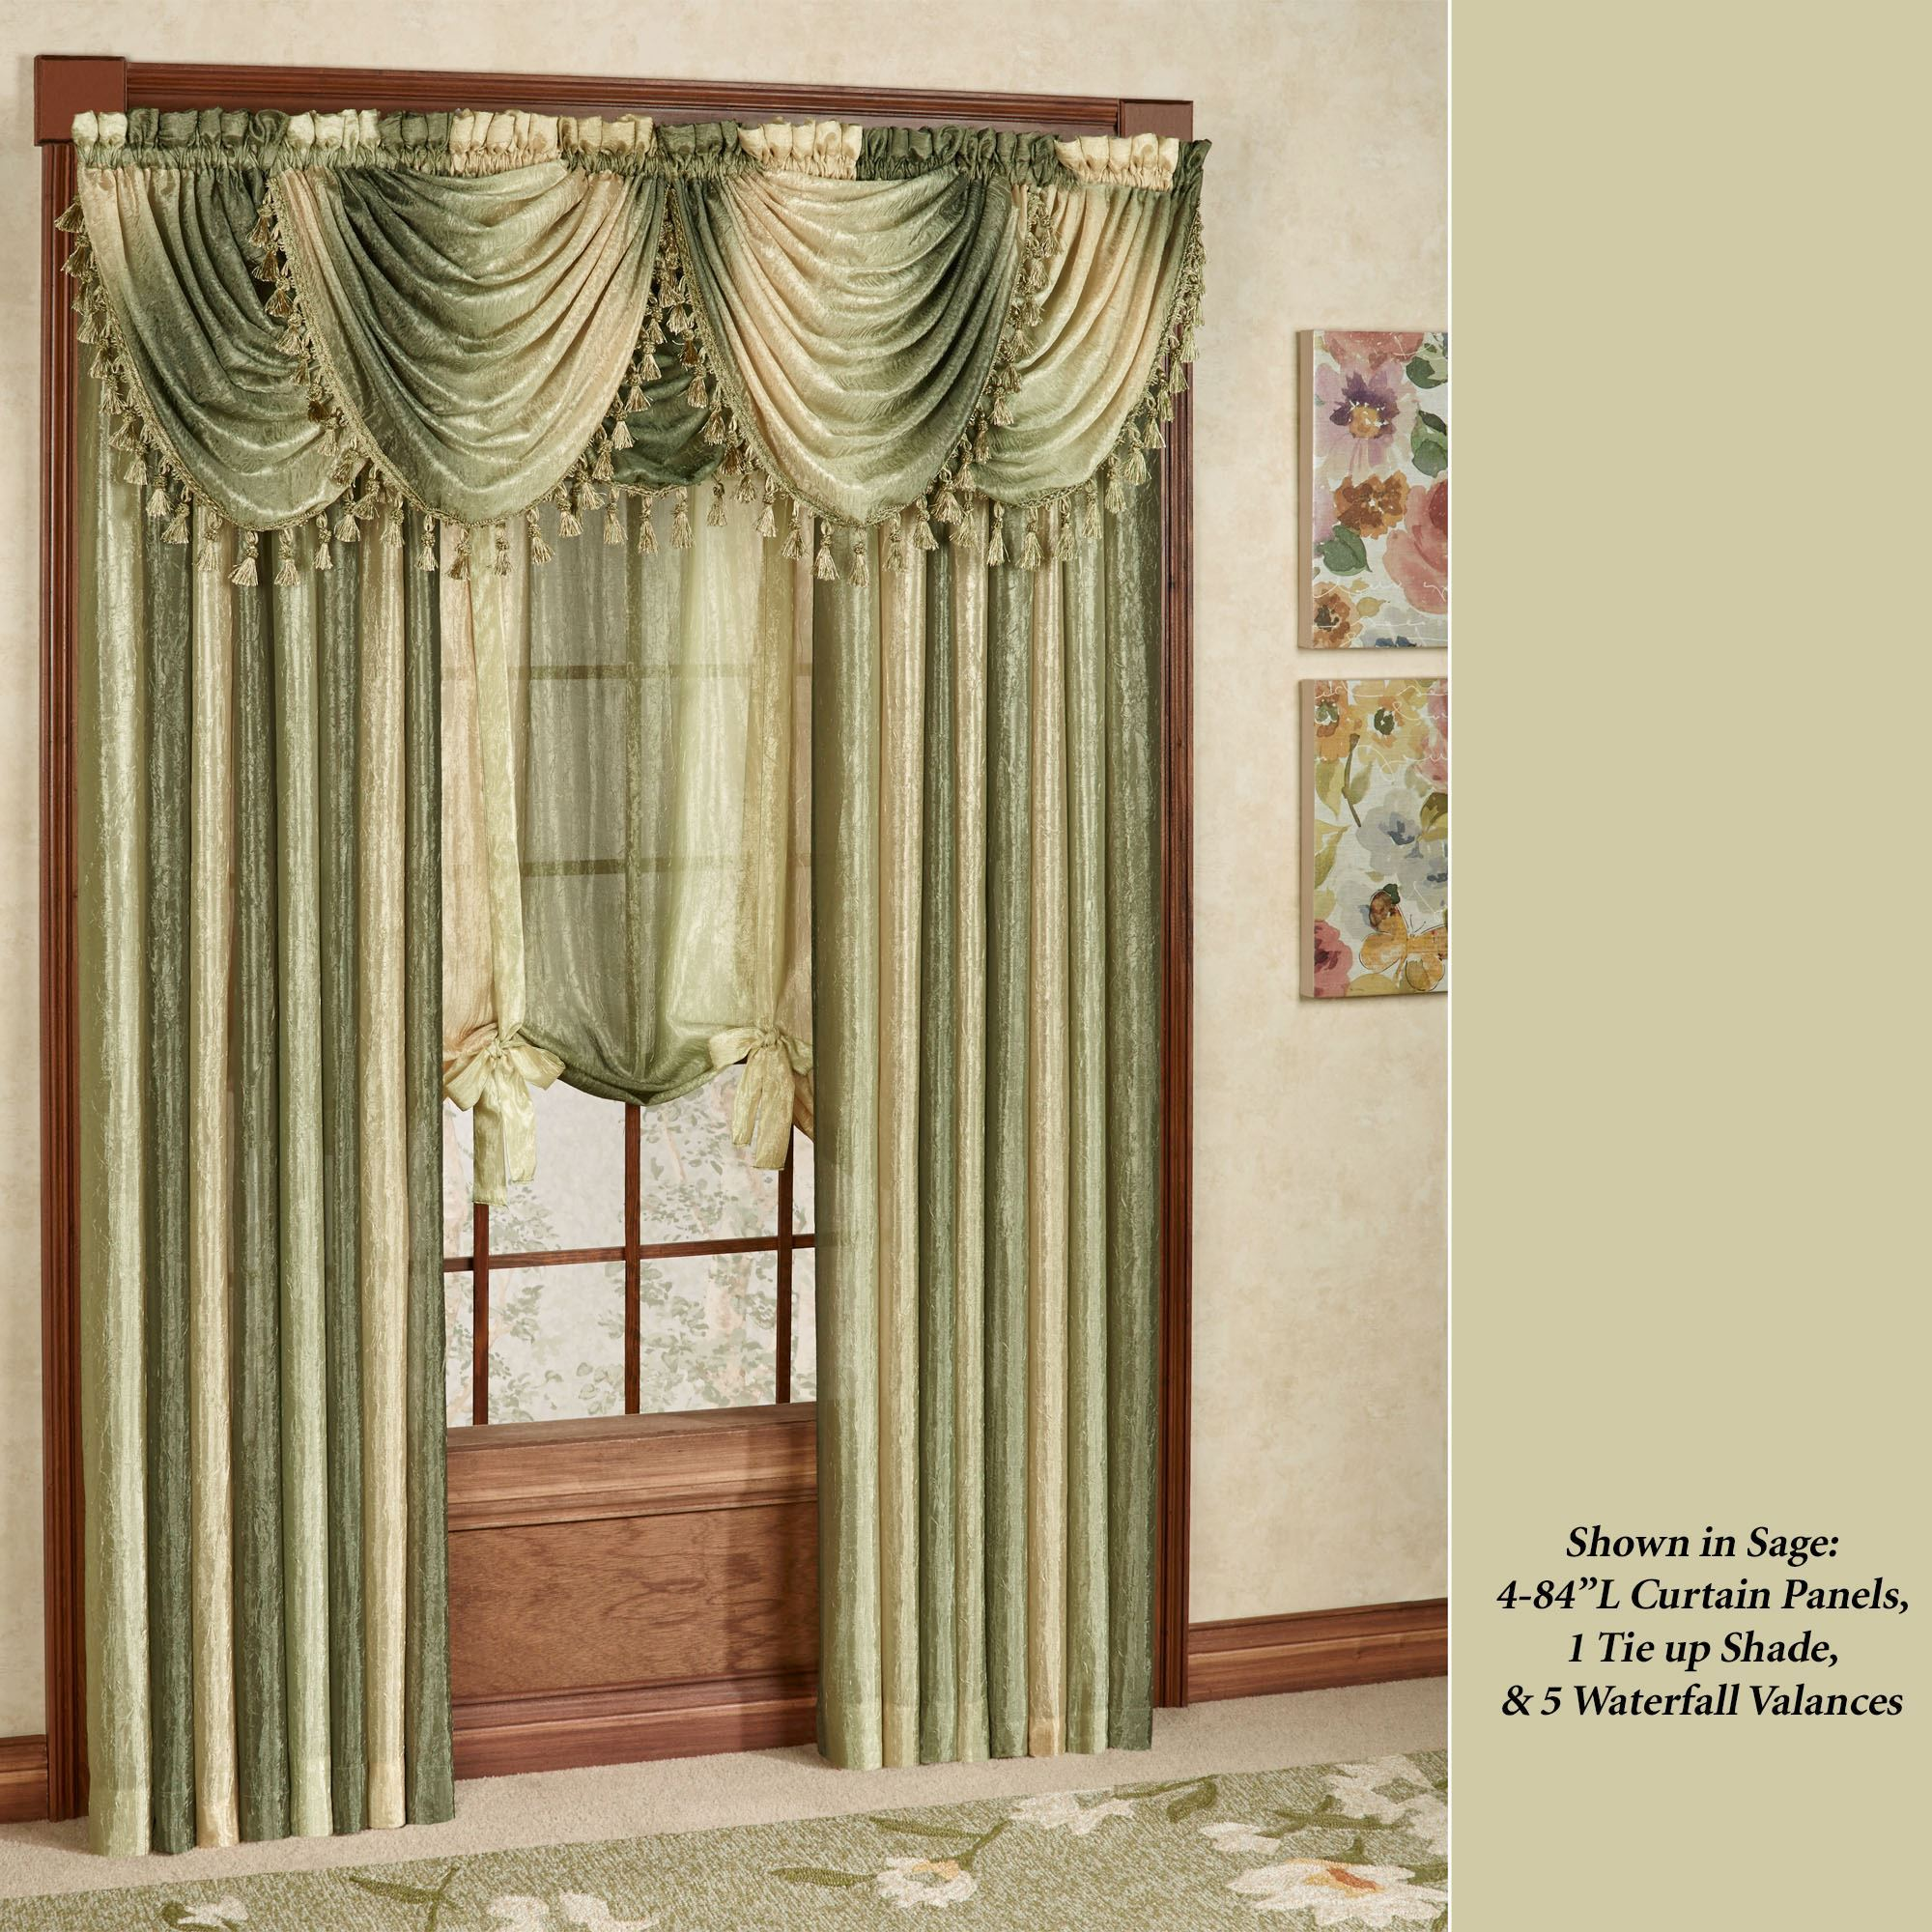 curtain valances ombre semi-sheer waterfall valances UMKPSSH